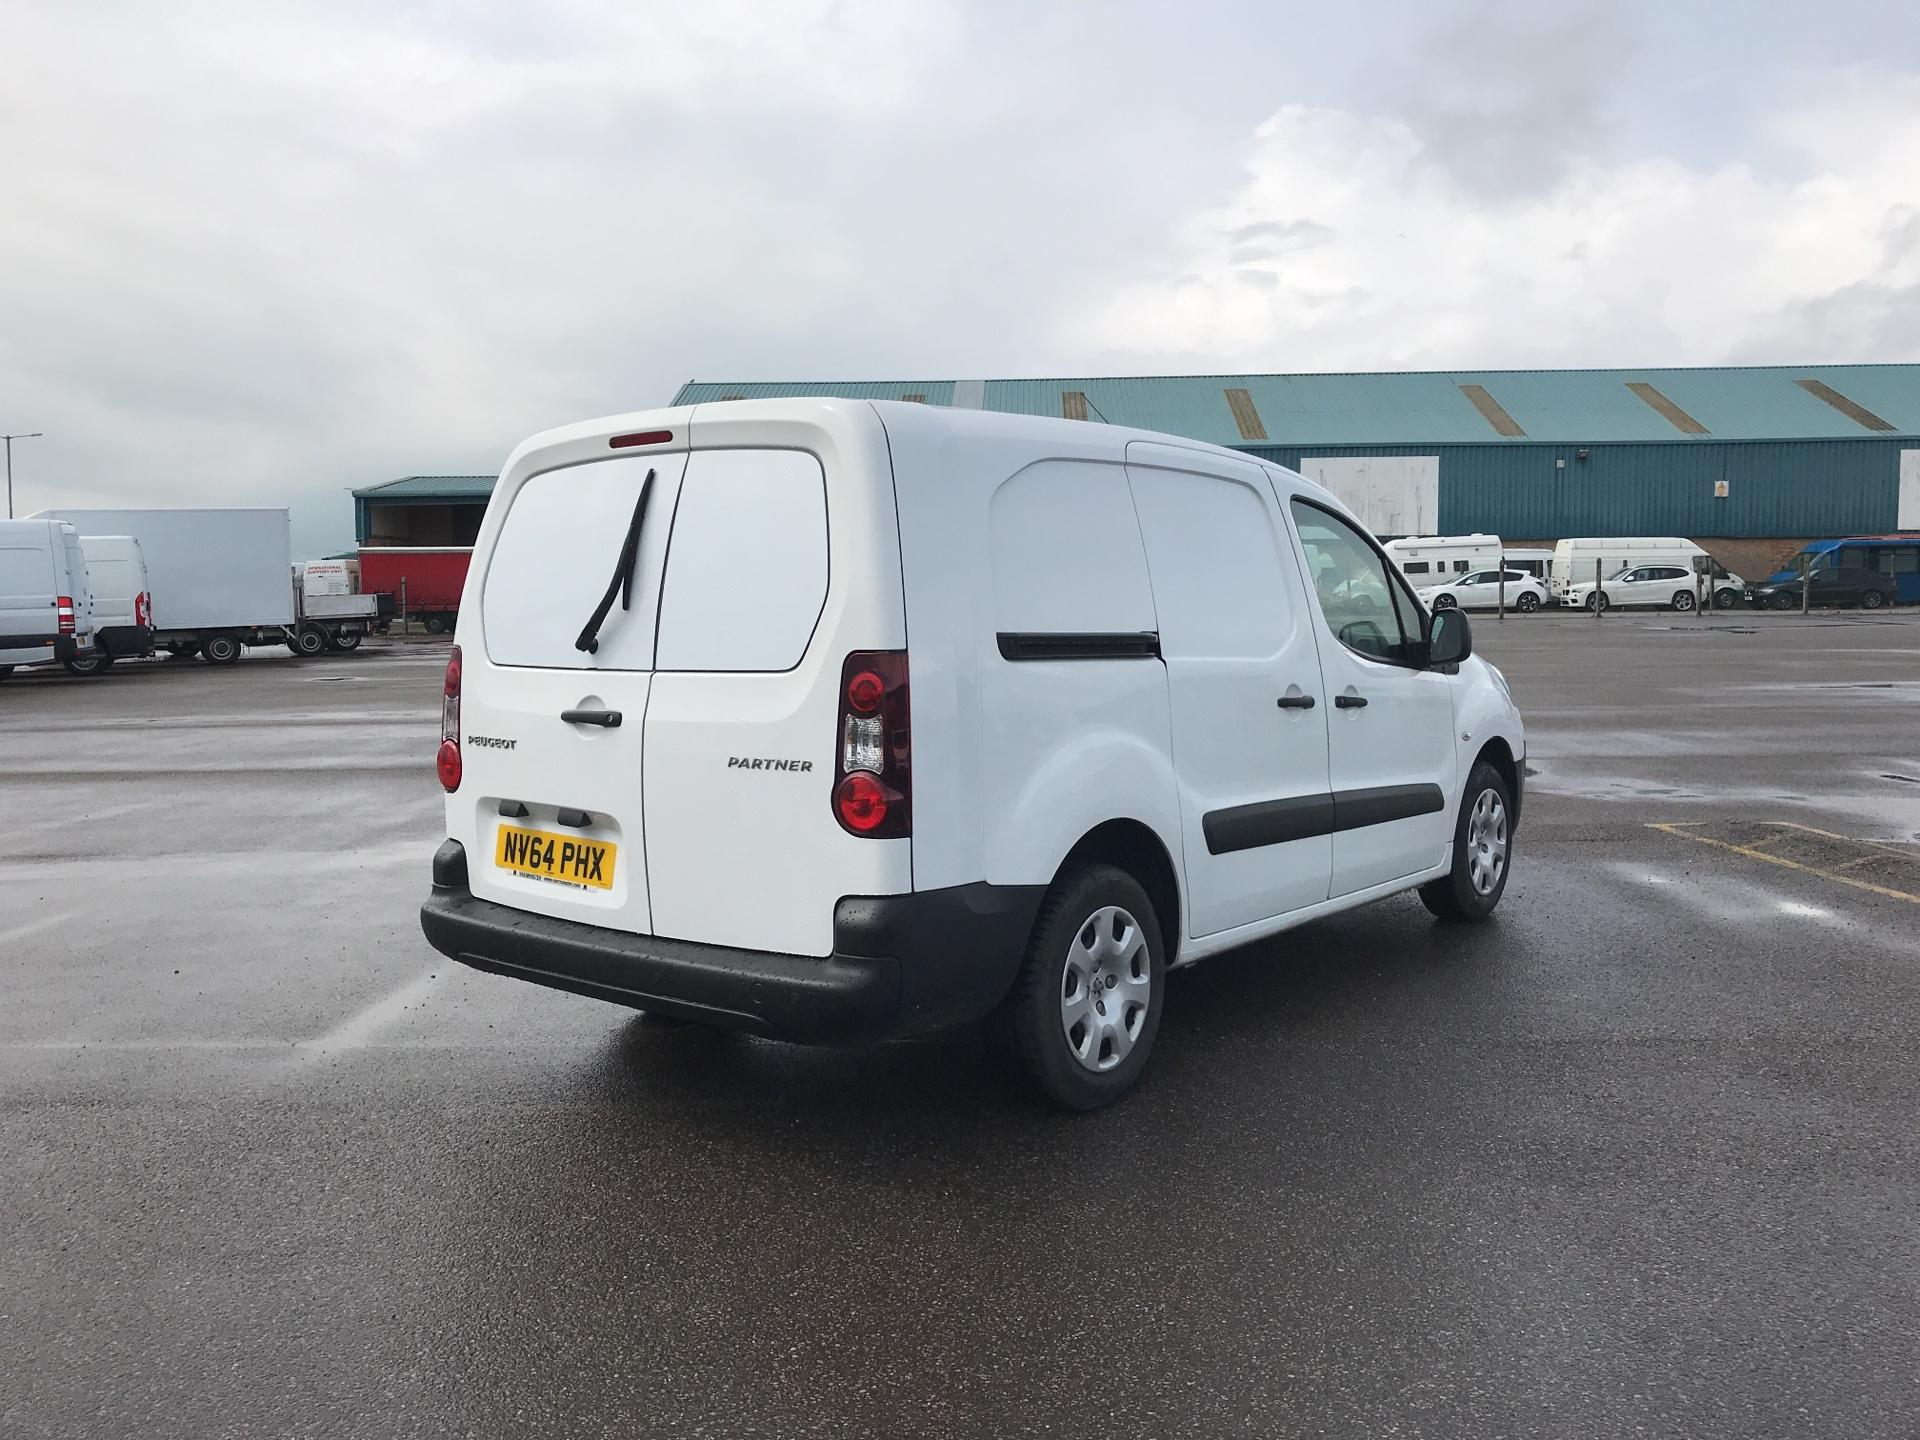 2015 Peugeot Partner L2 716 1.6 92PS CREW VAN EURO 5 (NV64PHX) Thumbnail 3